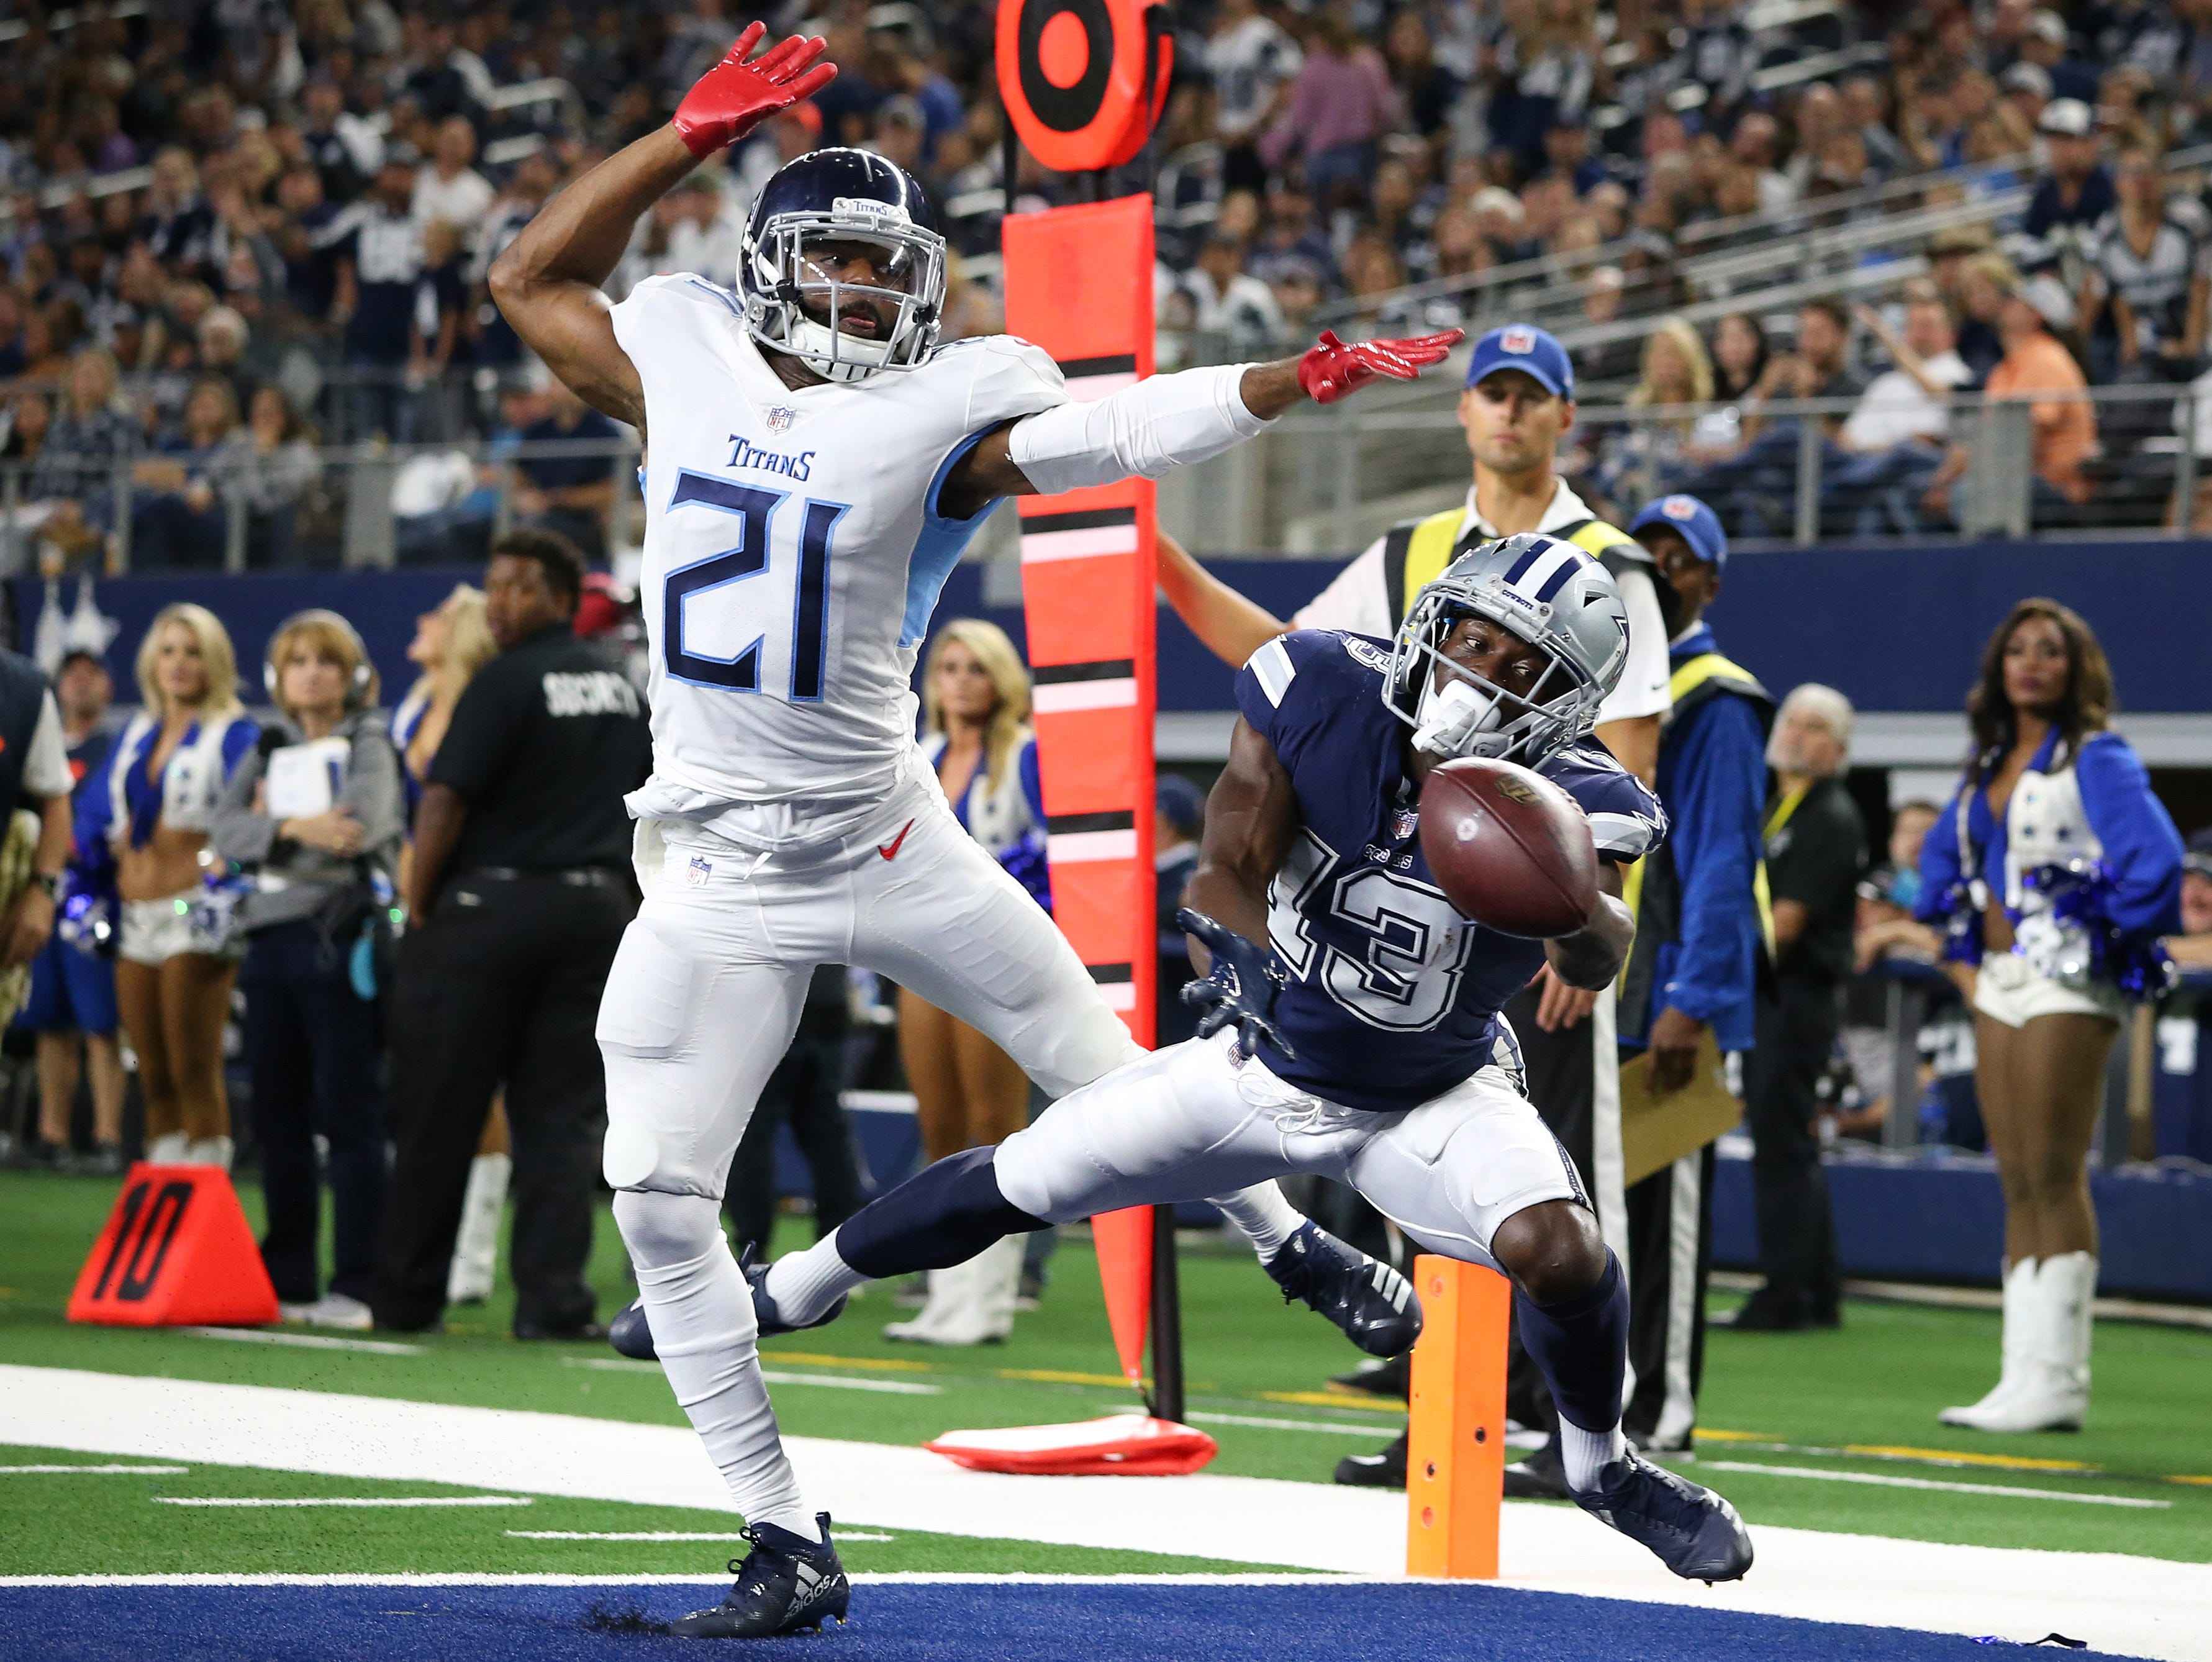 Dallas Cowboys receiver Michael Gallup (13) can't make the reception against Tennessee Titans cornerback Malcolm Butler (21) in the fourth quarter at AT&T Stadium.